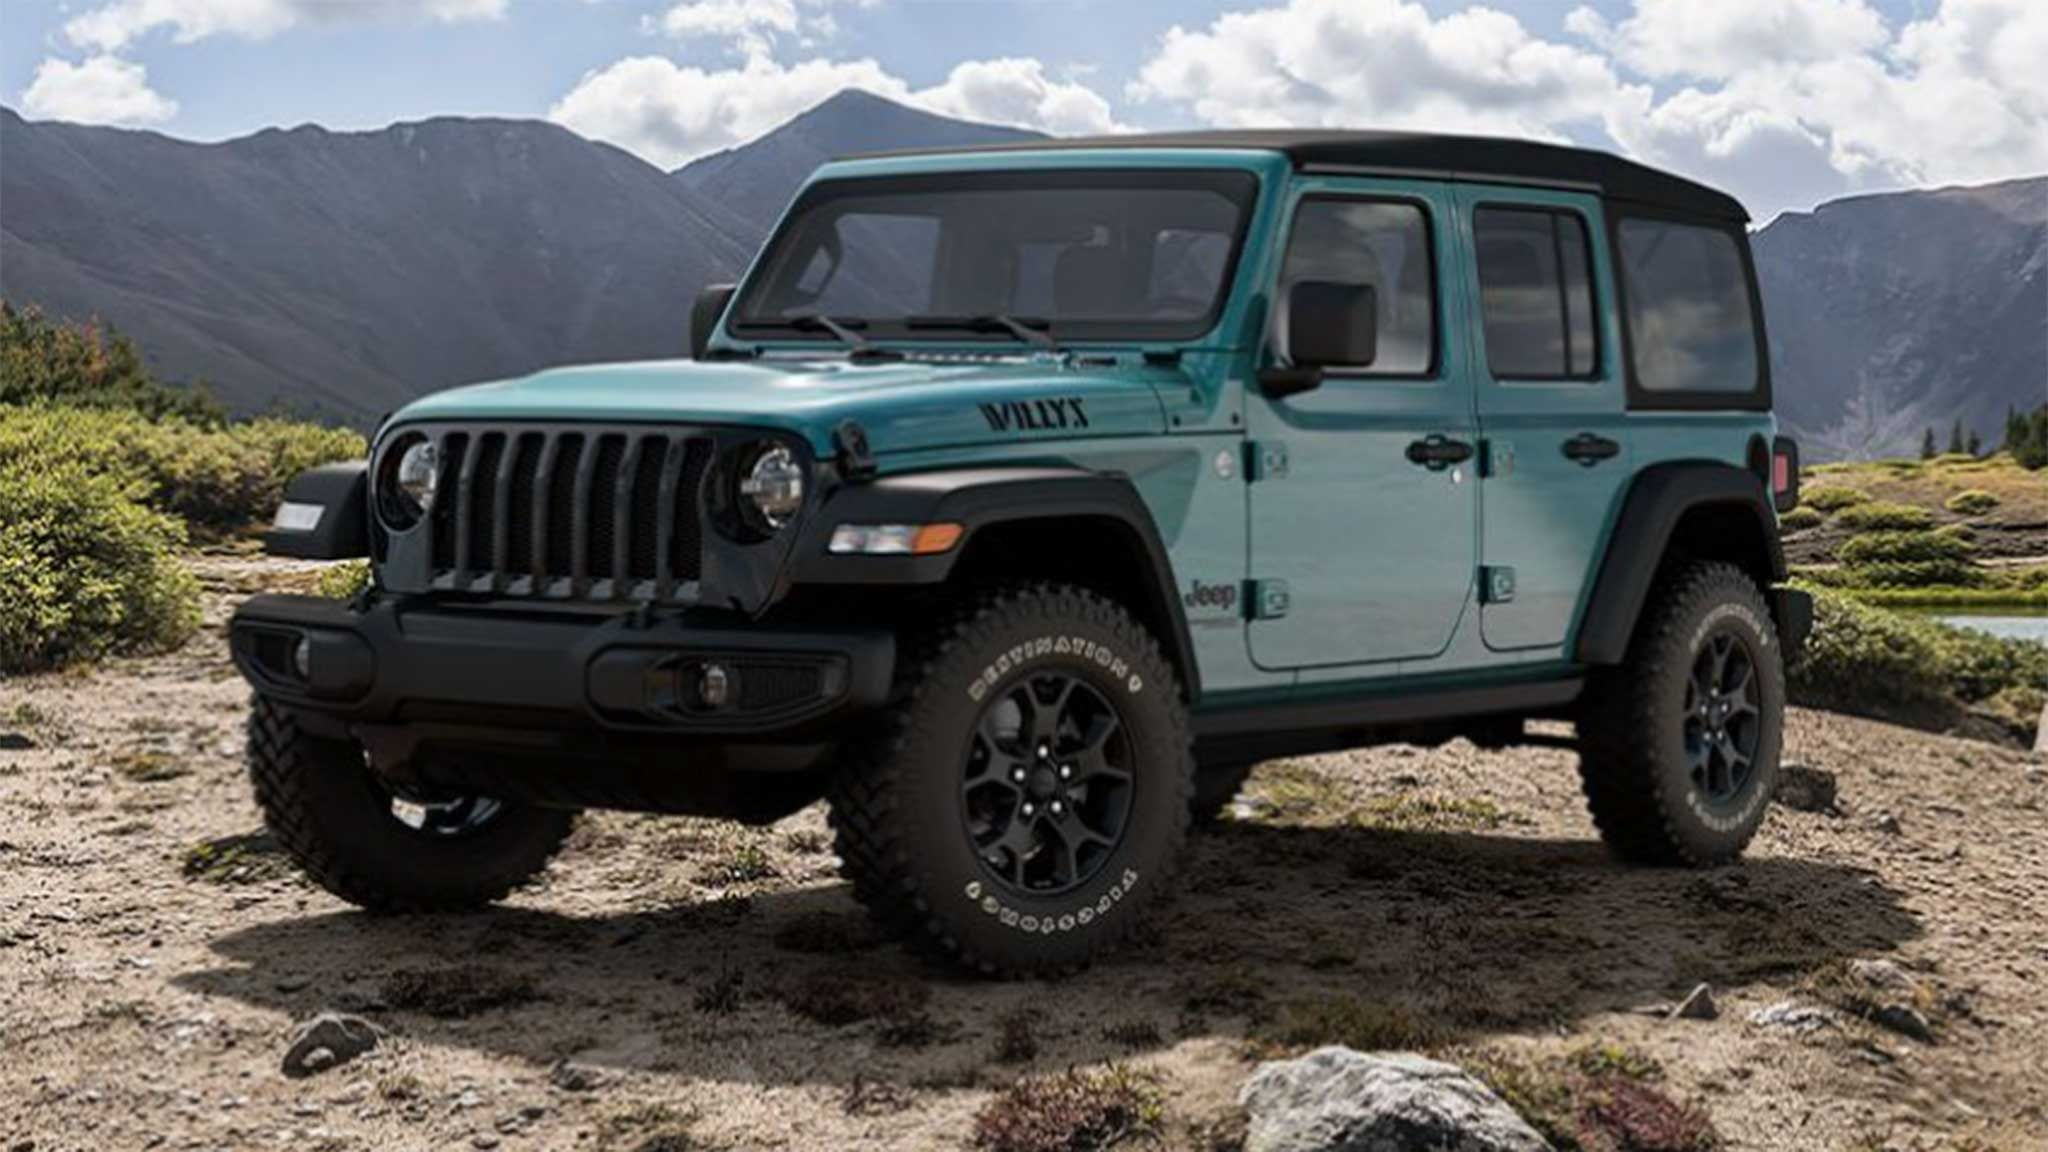 2020 Jeep Wrangler S Three Coolest Paint Colors Axed For One New Hue In 2020 Jeep Wrangler Jeep Green Jeep